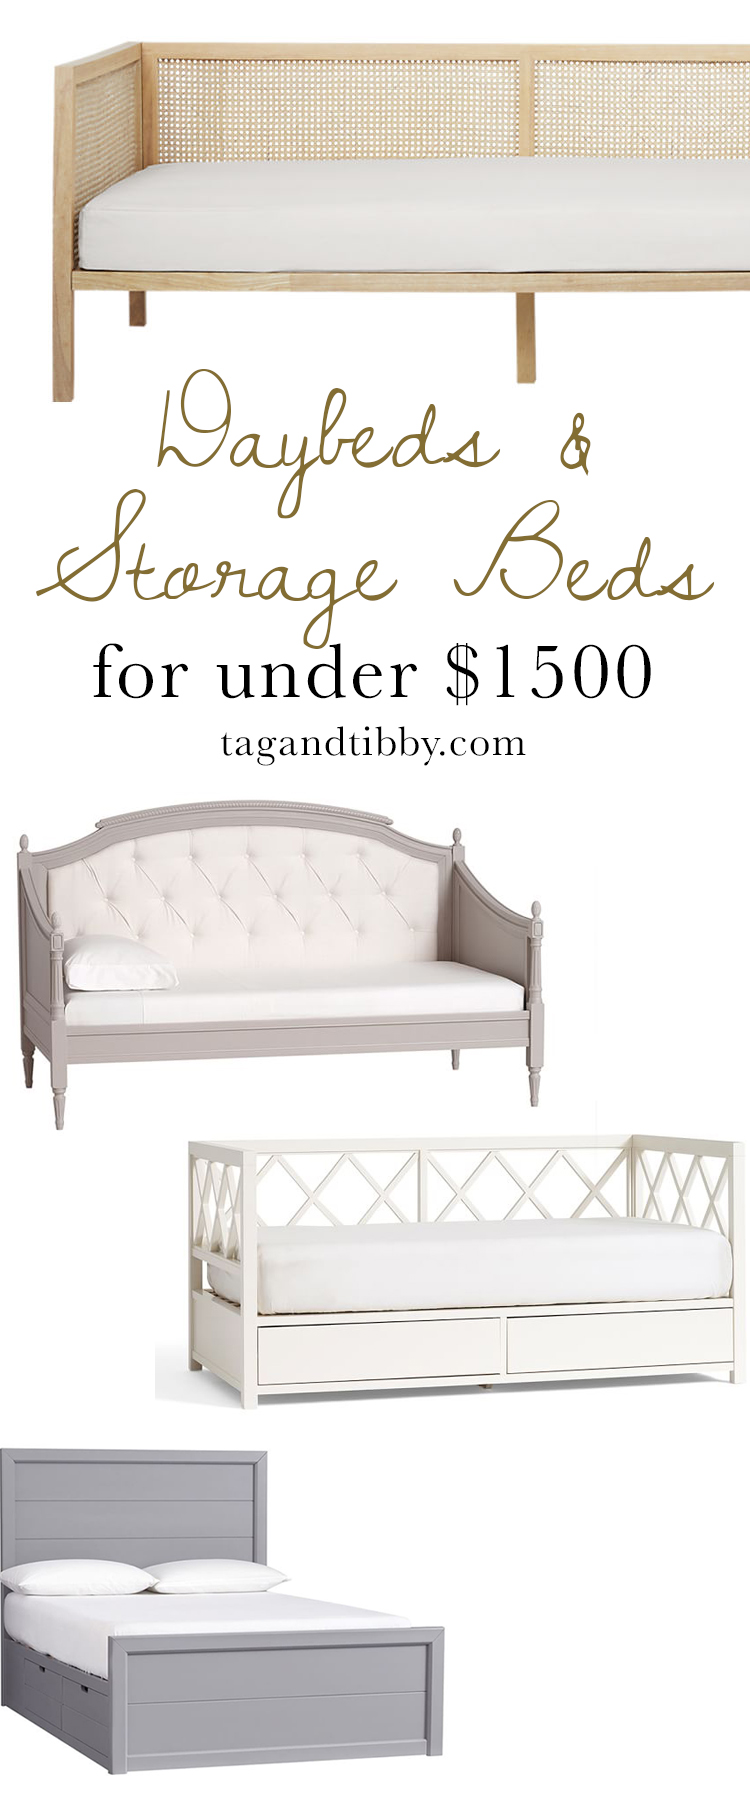 Daybeds & Storage Beds for Tweens priced under $1.5k